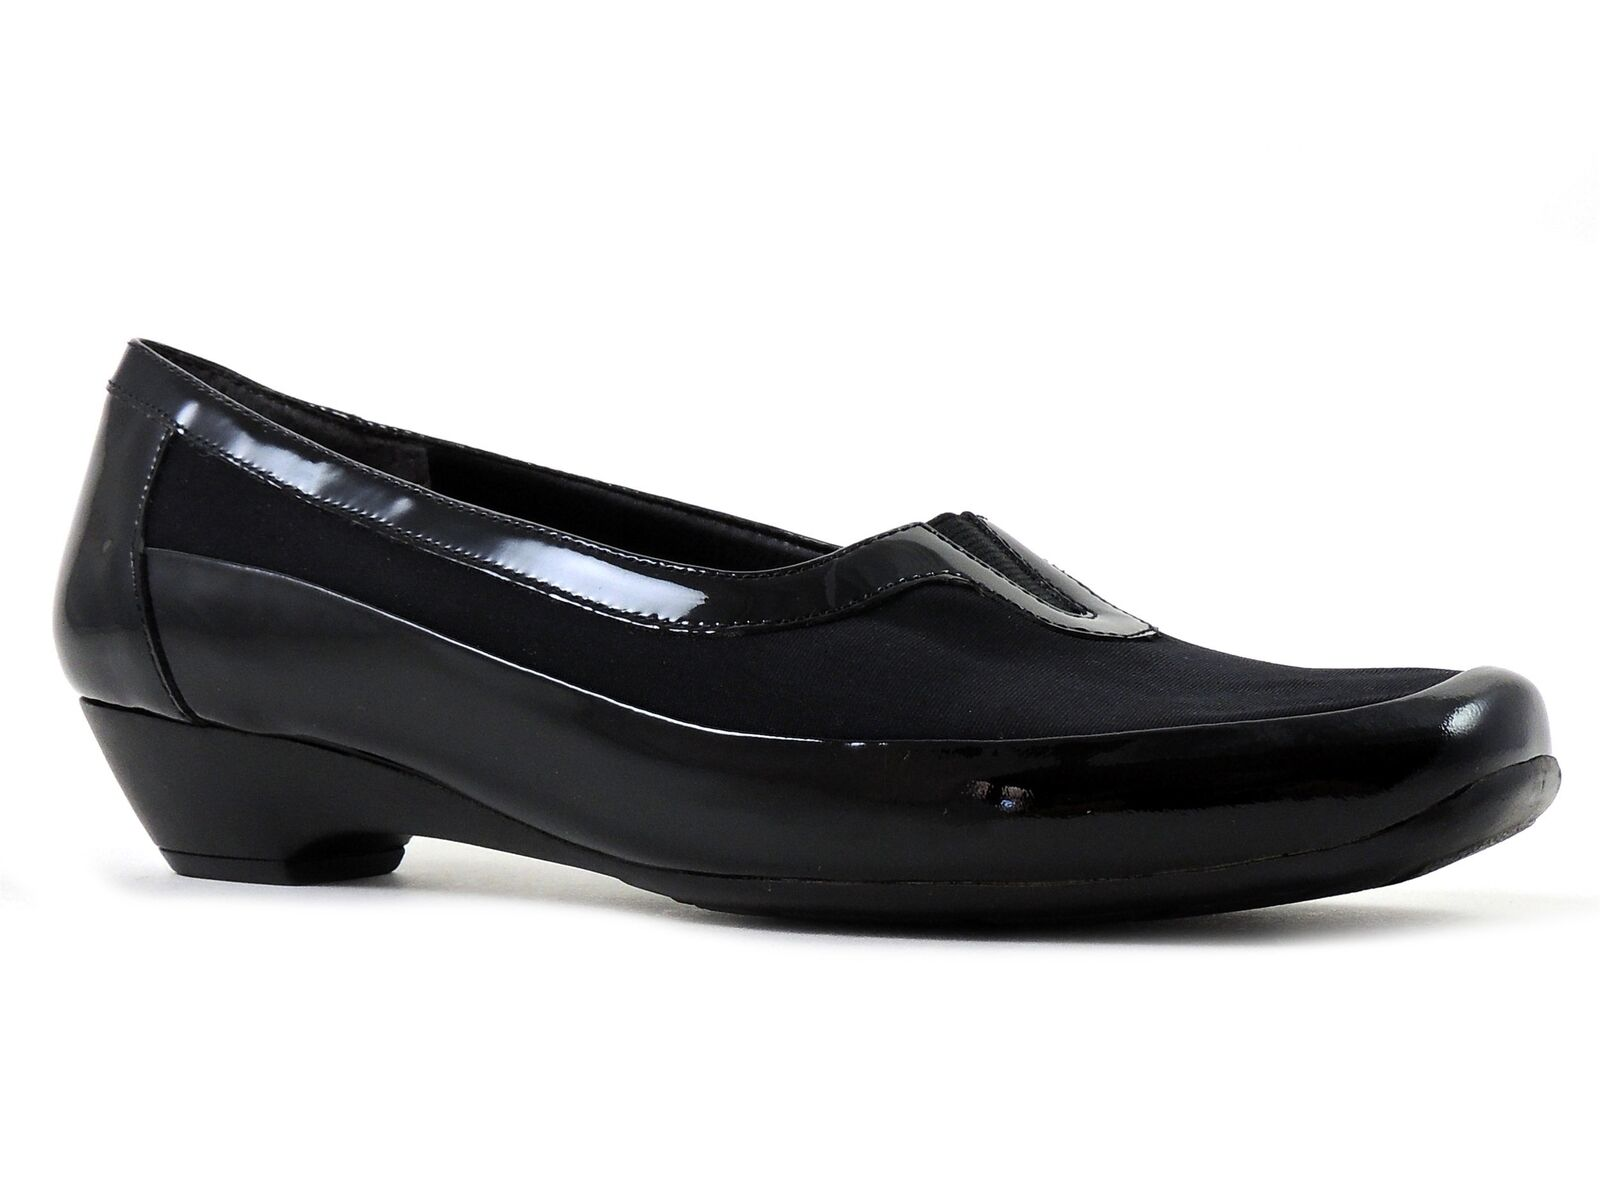 Easy Spirit Mujer Emmie Charol Negro Talla 6 M M M Mocasines  perfecto